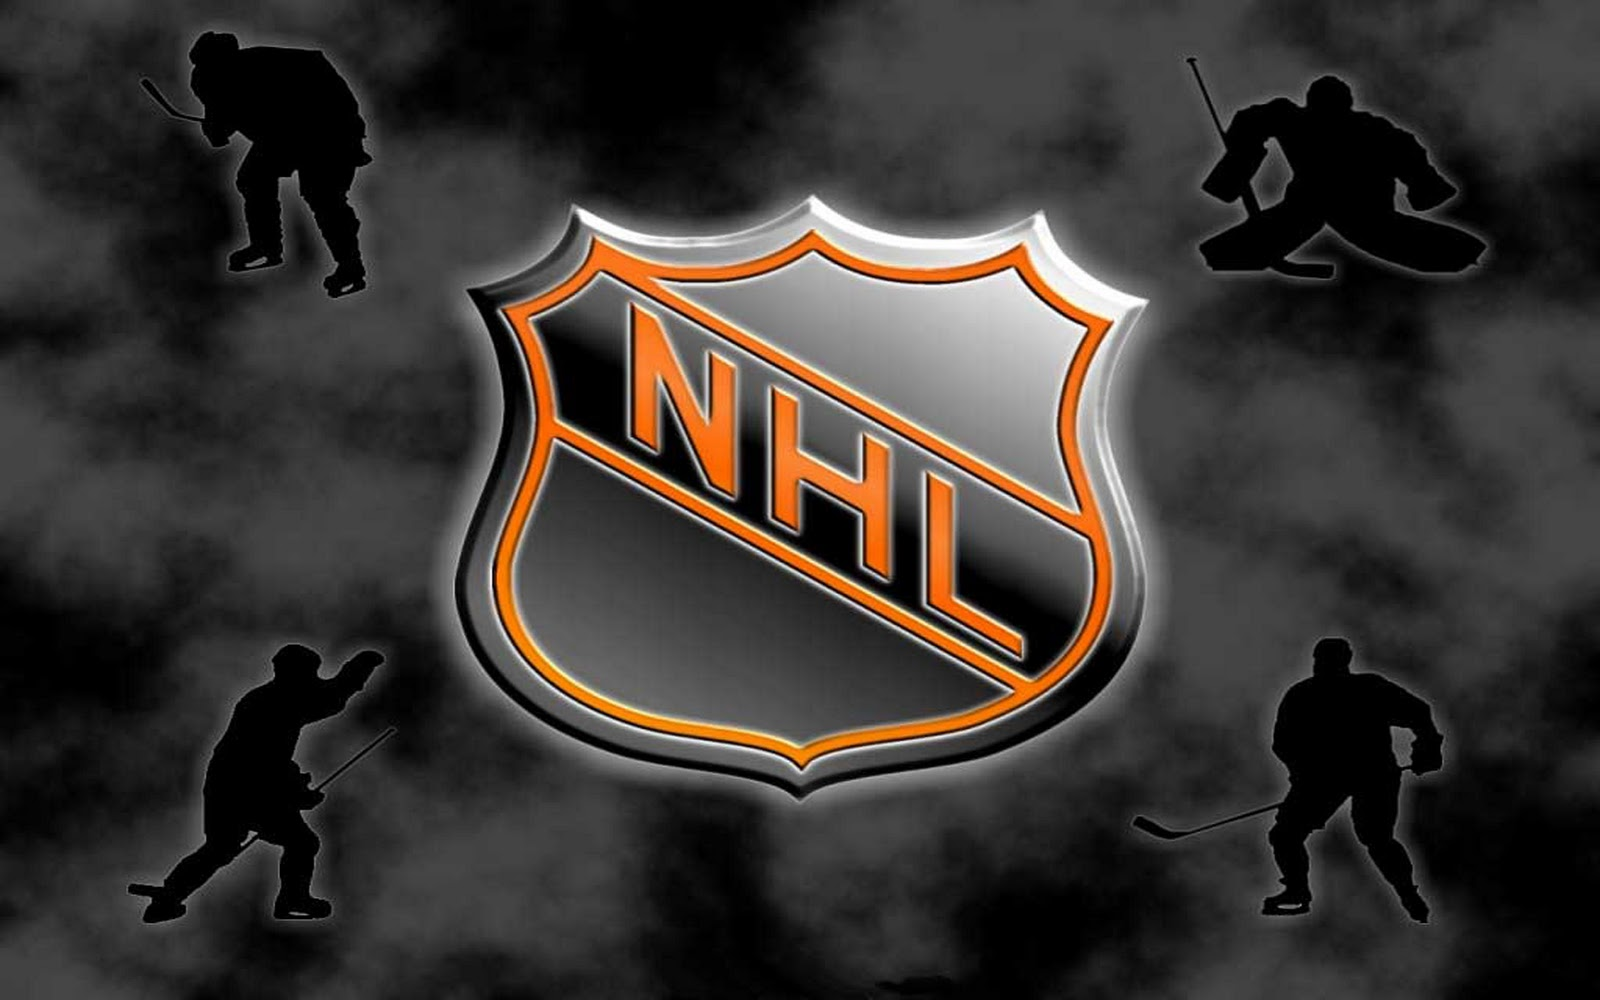 HD Desktop Wallpaper Ice Hockey Wallpapers 27 Nhl Ice Hockey Teams 1600x1000